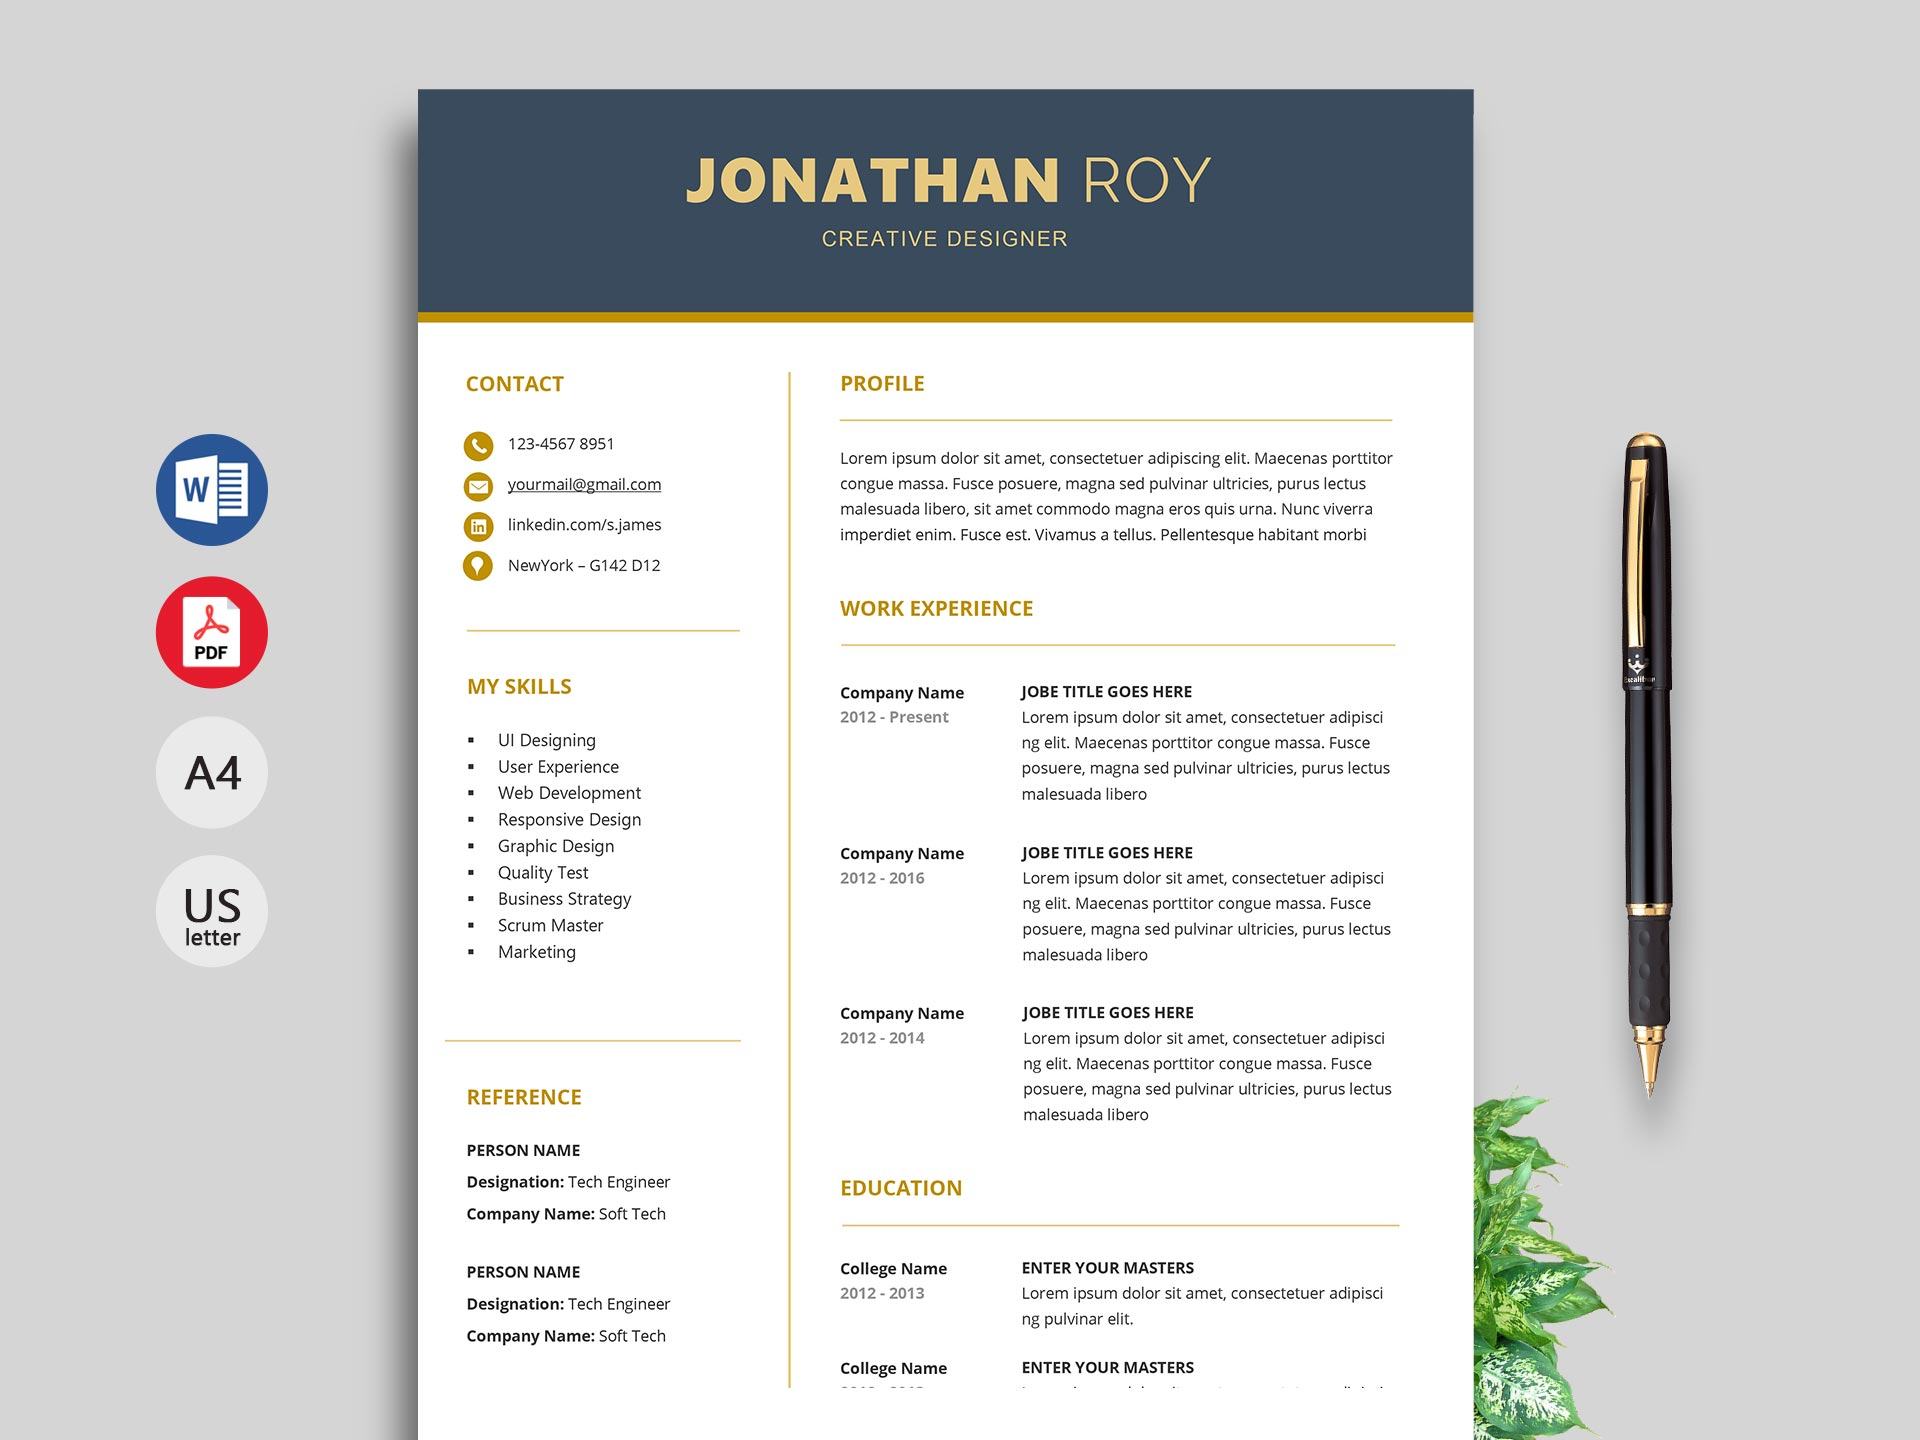 simple resume format cv template free templates gain outreach keywords for management Resume Free Resume Templates 2020 Download